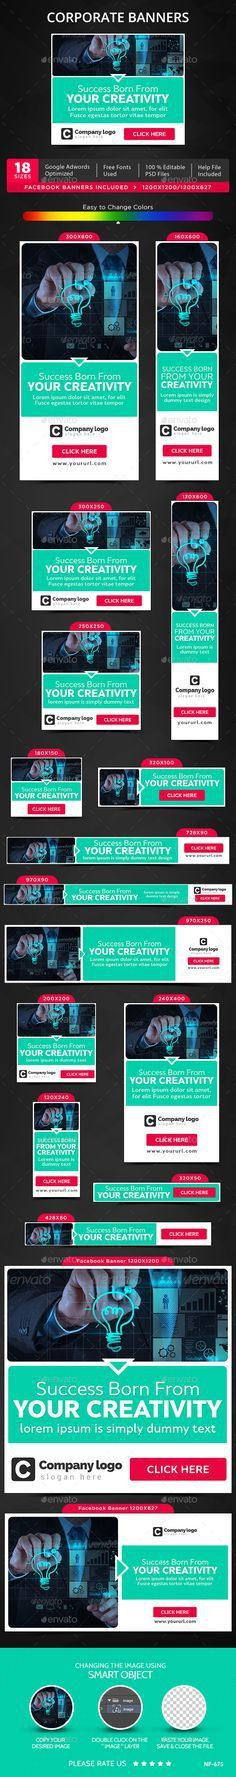 Mobile App Web Banner Set Template PSD | Buy and Download: http ...